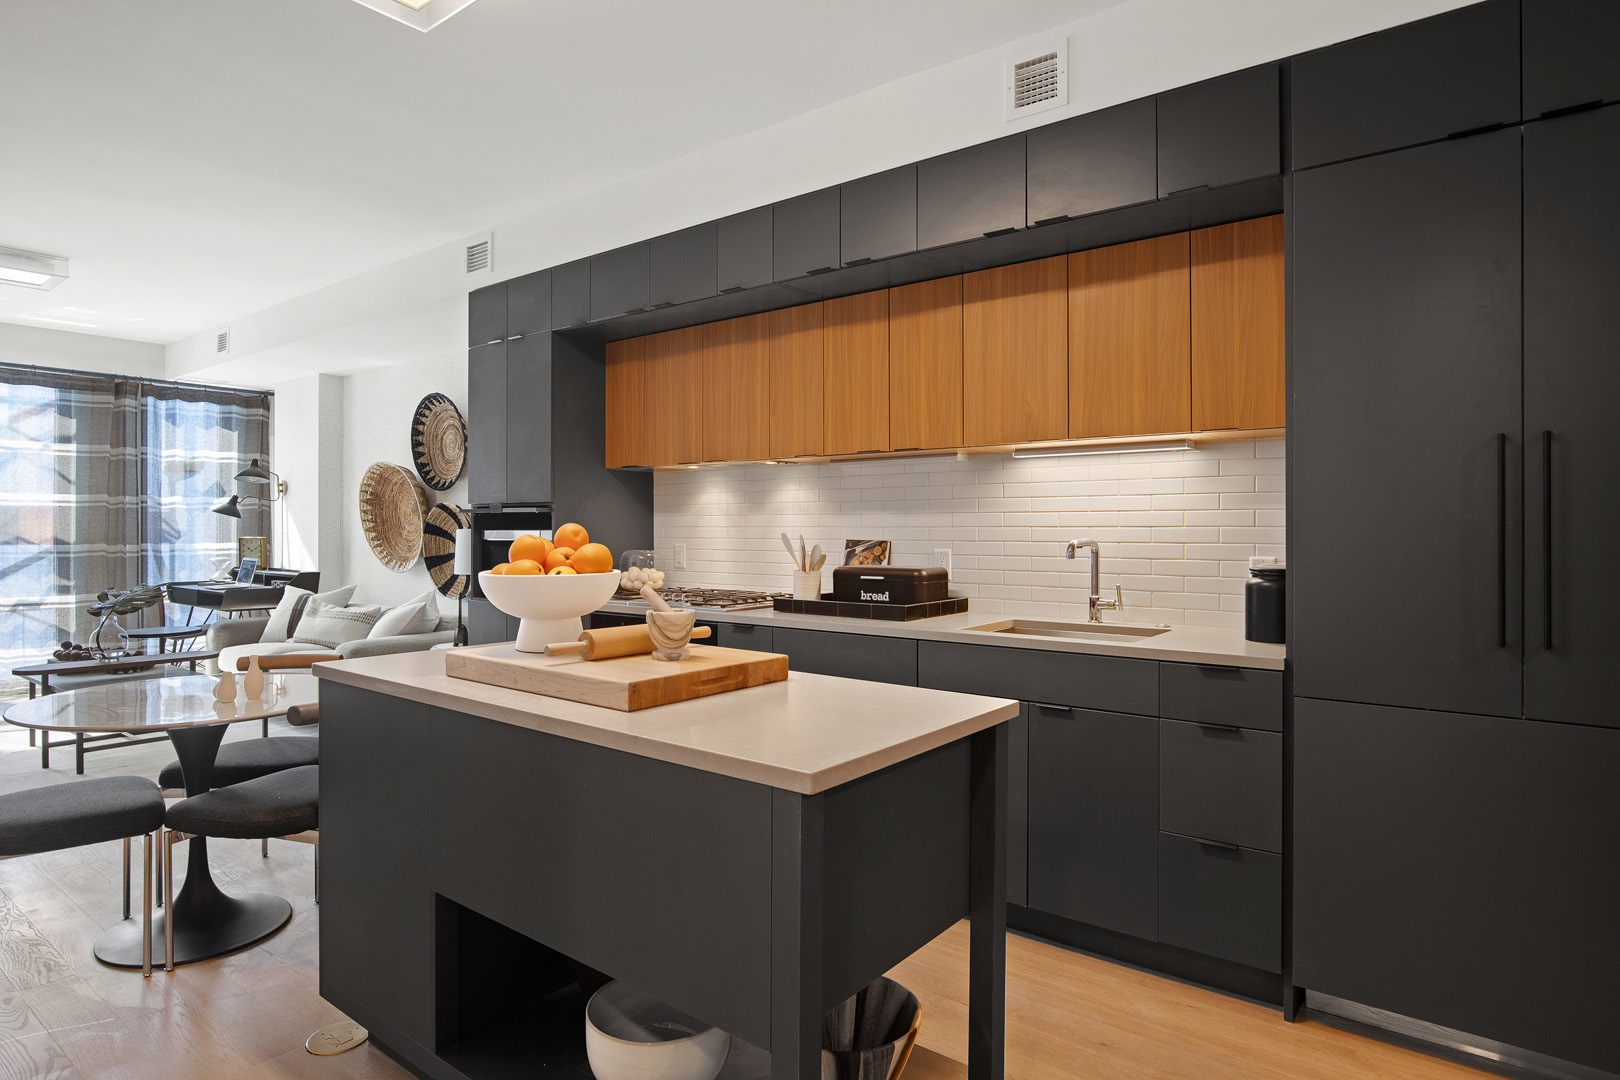 A view of the kitchen and living space in a TRIBECA condo in Washington DC.